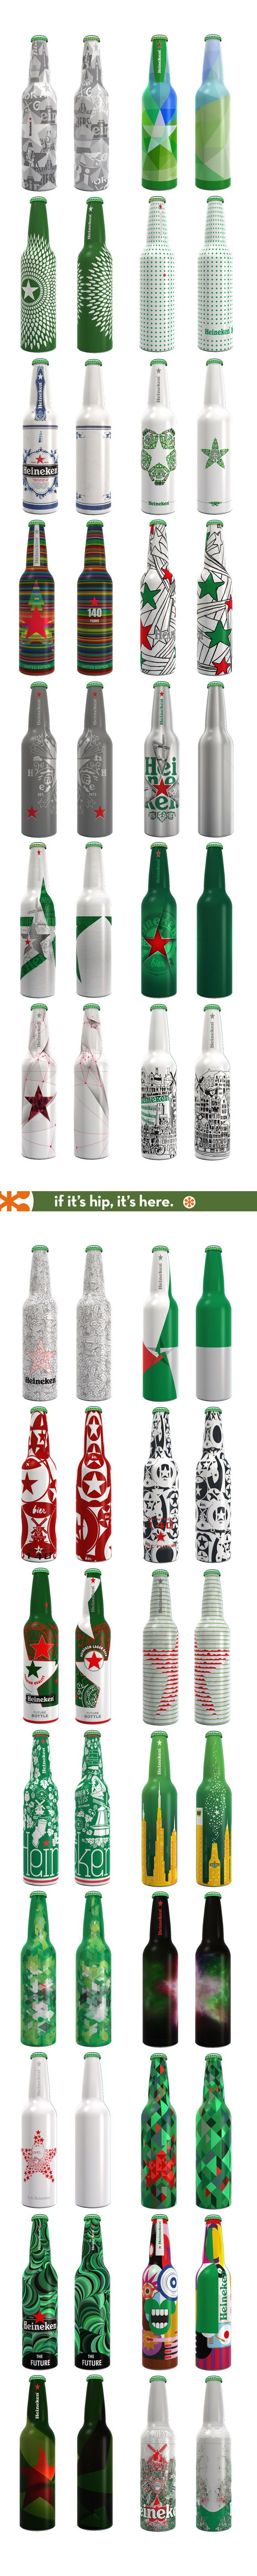 ALL the finalists and the winner of the Heineken Future Bottle Remix Competition. Please be sure to link to the post if you repin - this was a lot of work, lol. Thanks Laura PD